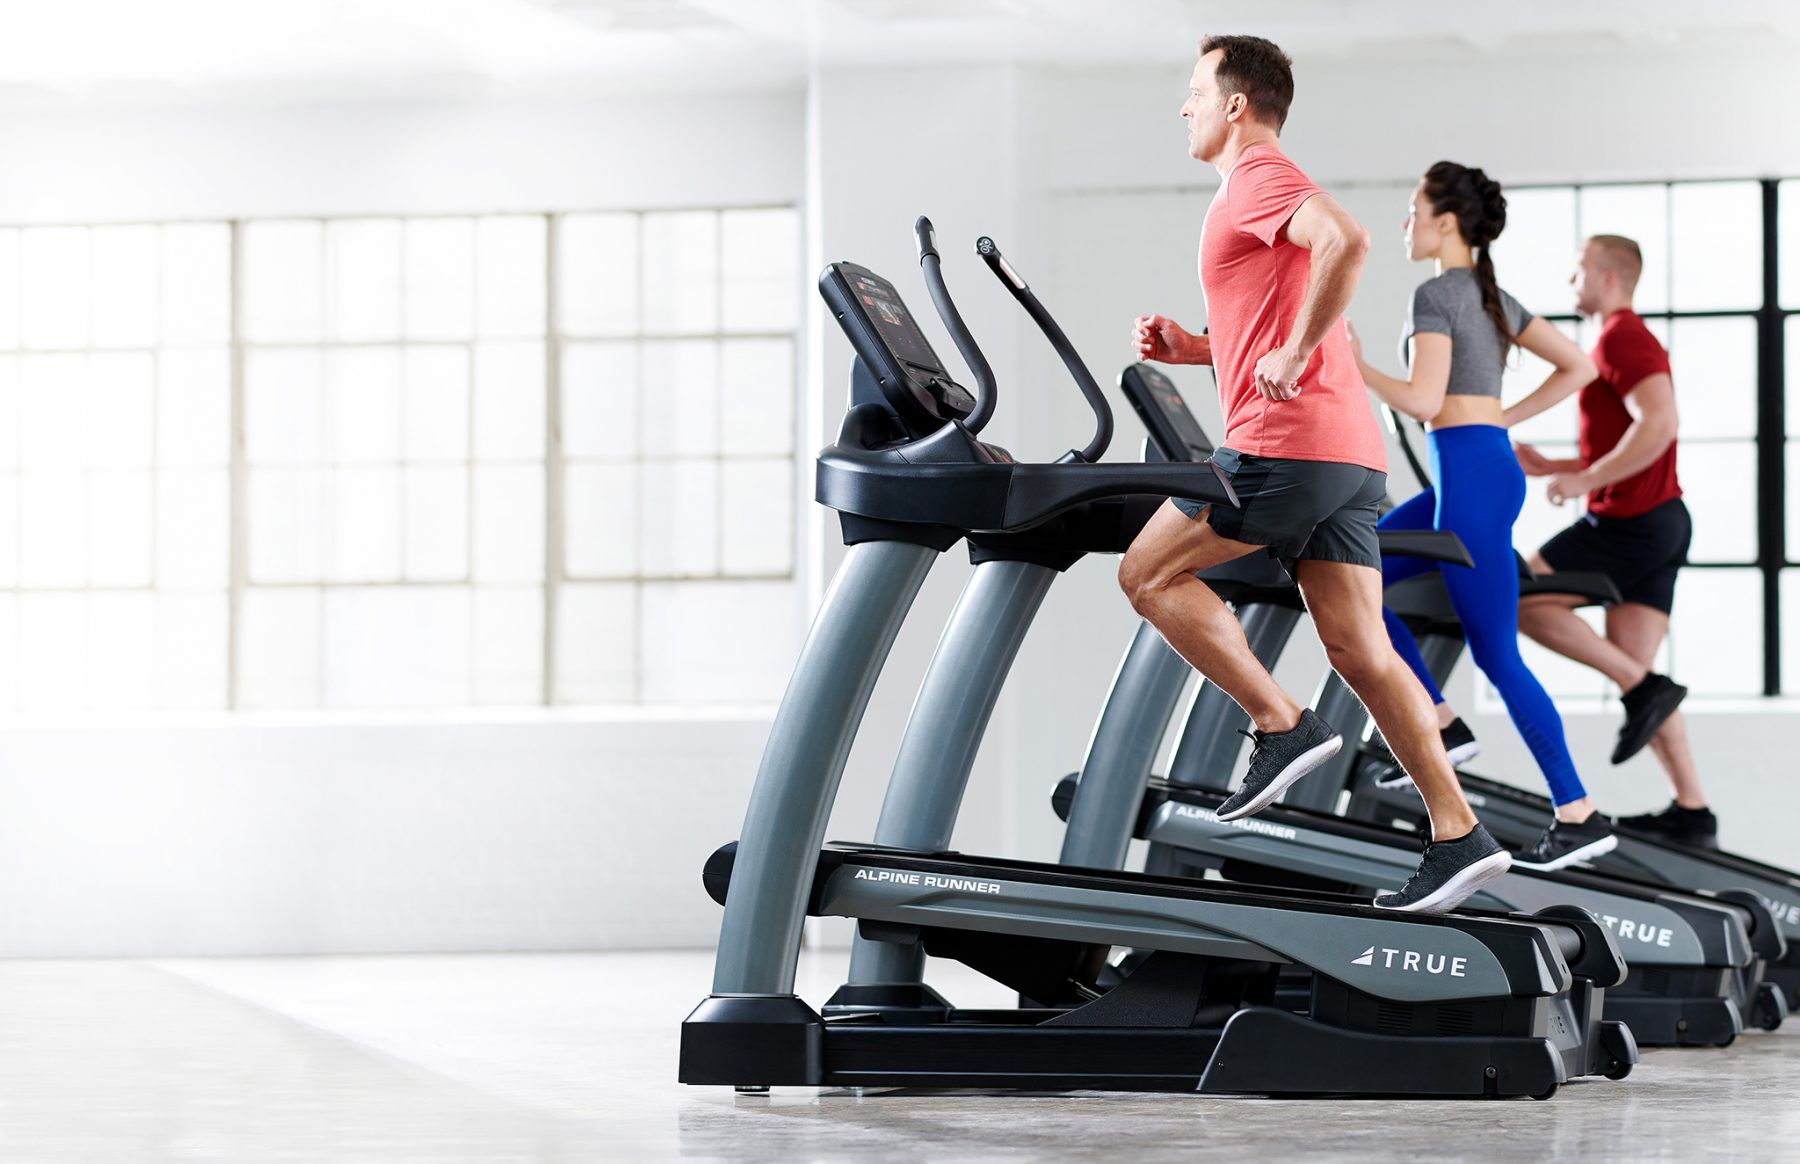 TRUE Fitness ellipticals are part of our commercial fitness equipment.